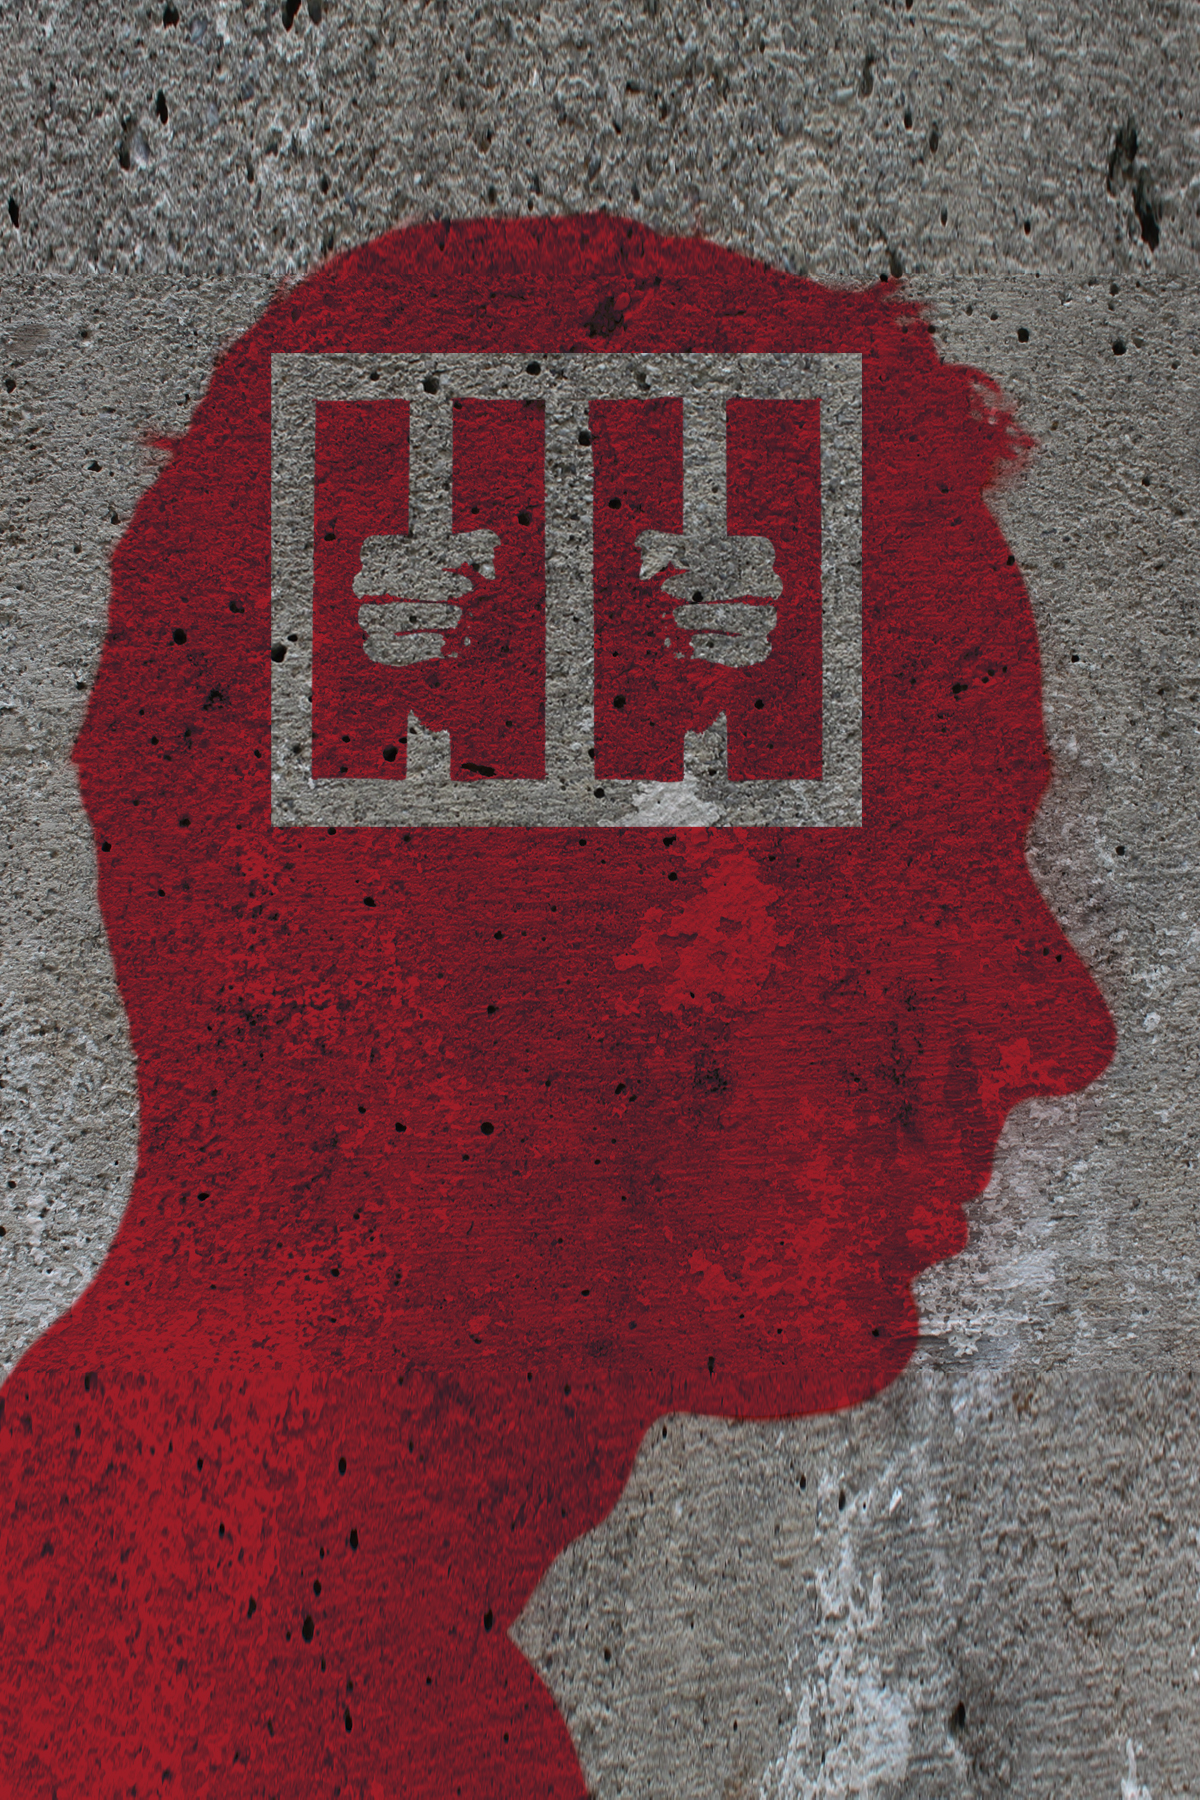 Red silhouette of a man's head with image of hands gripping cell bars